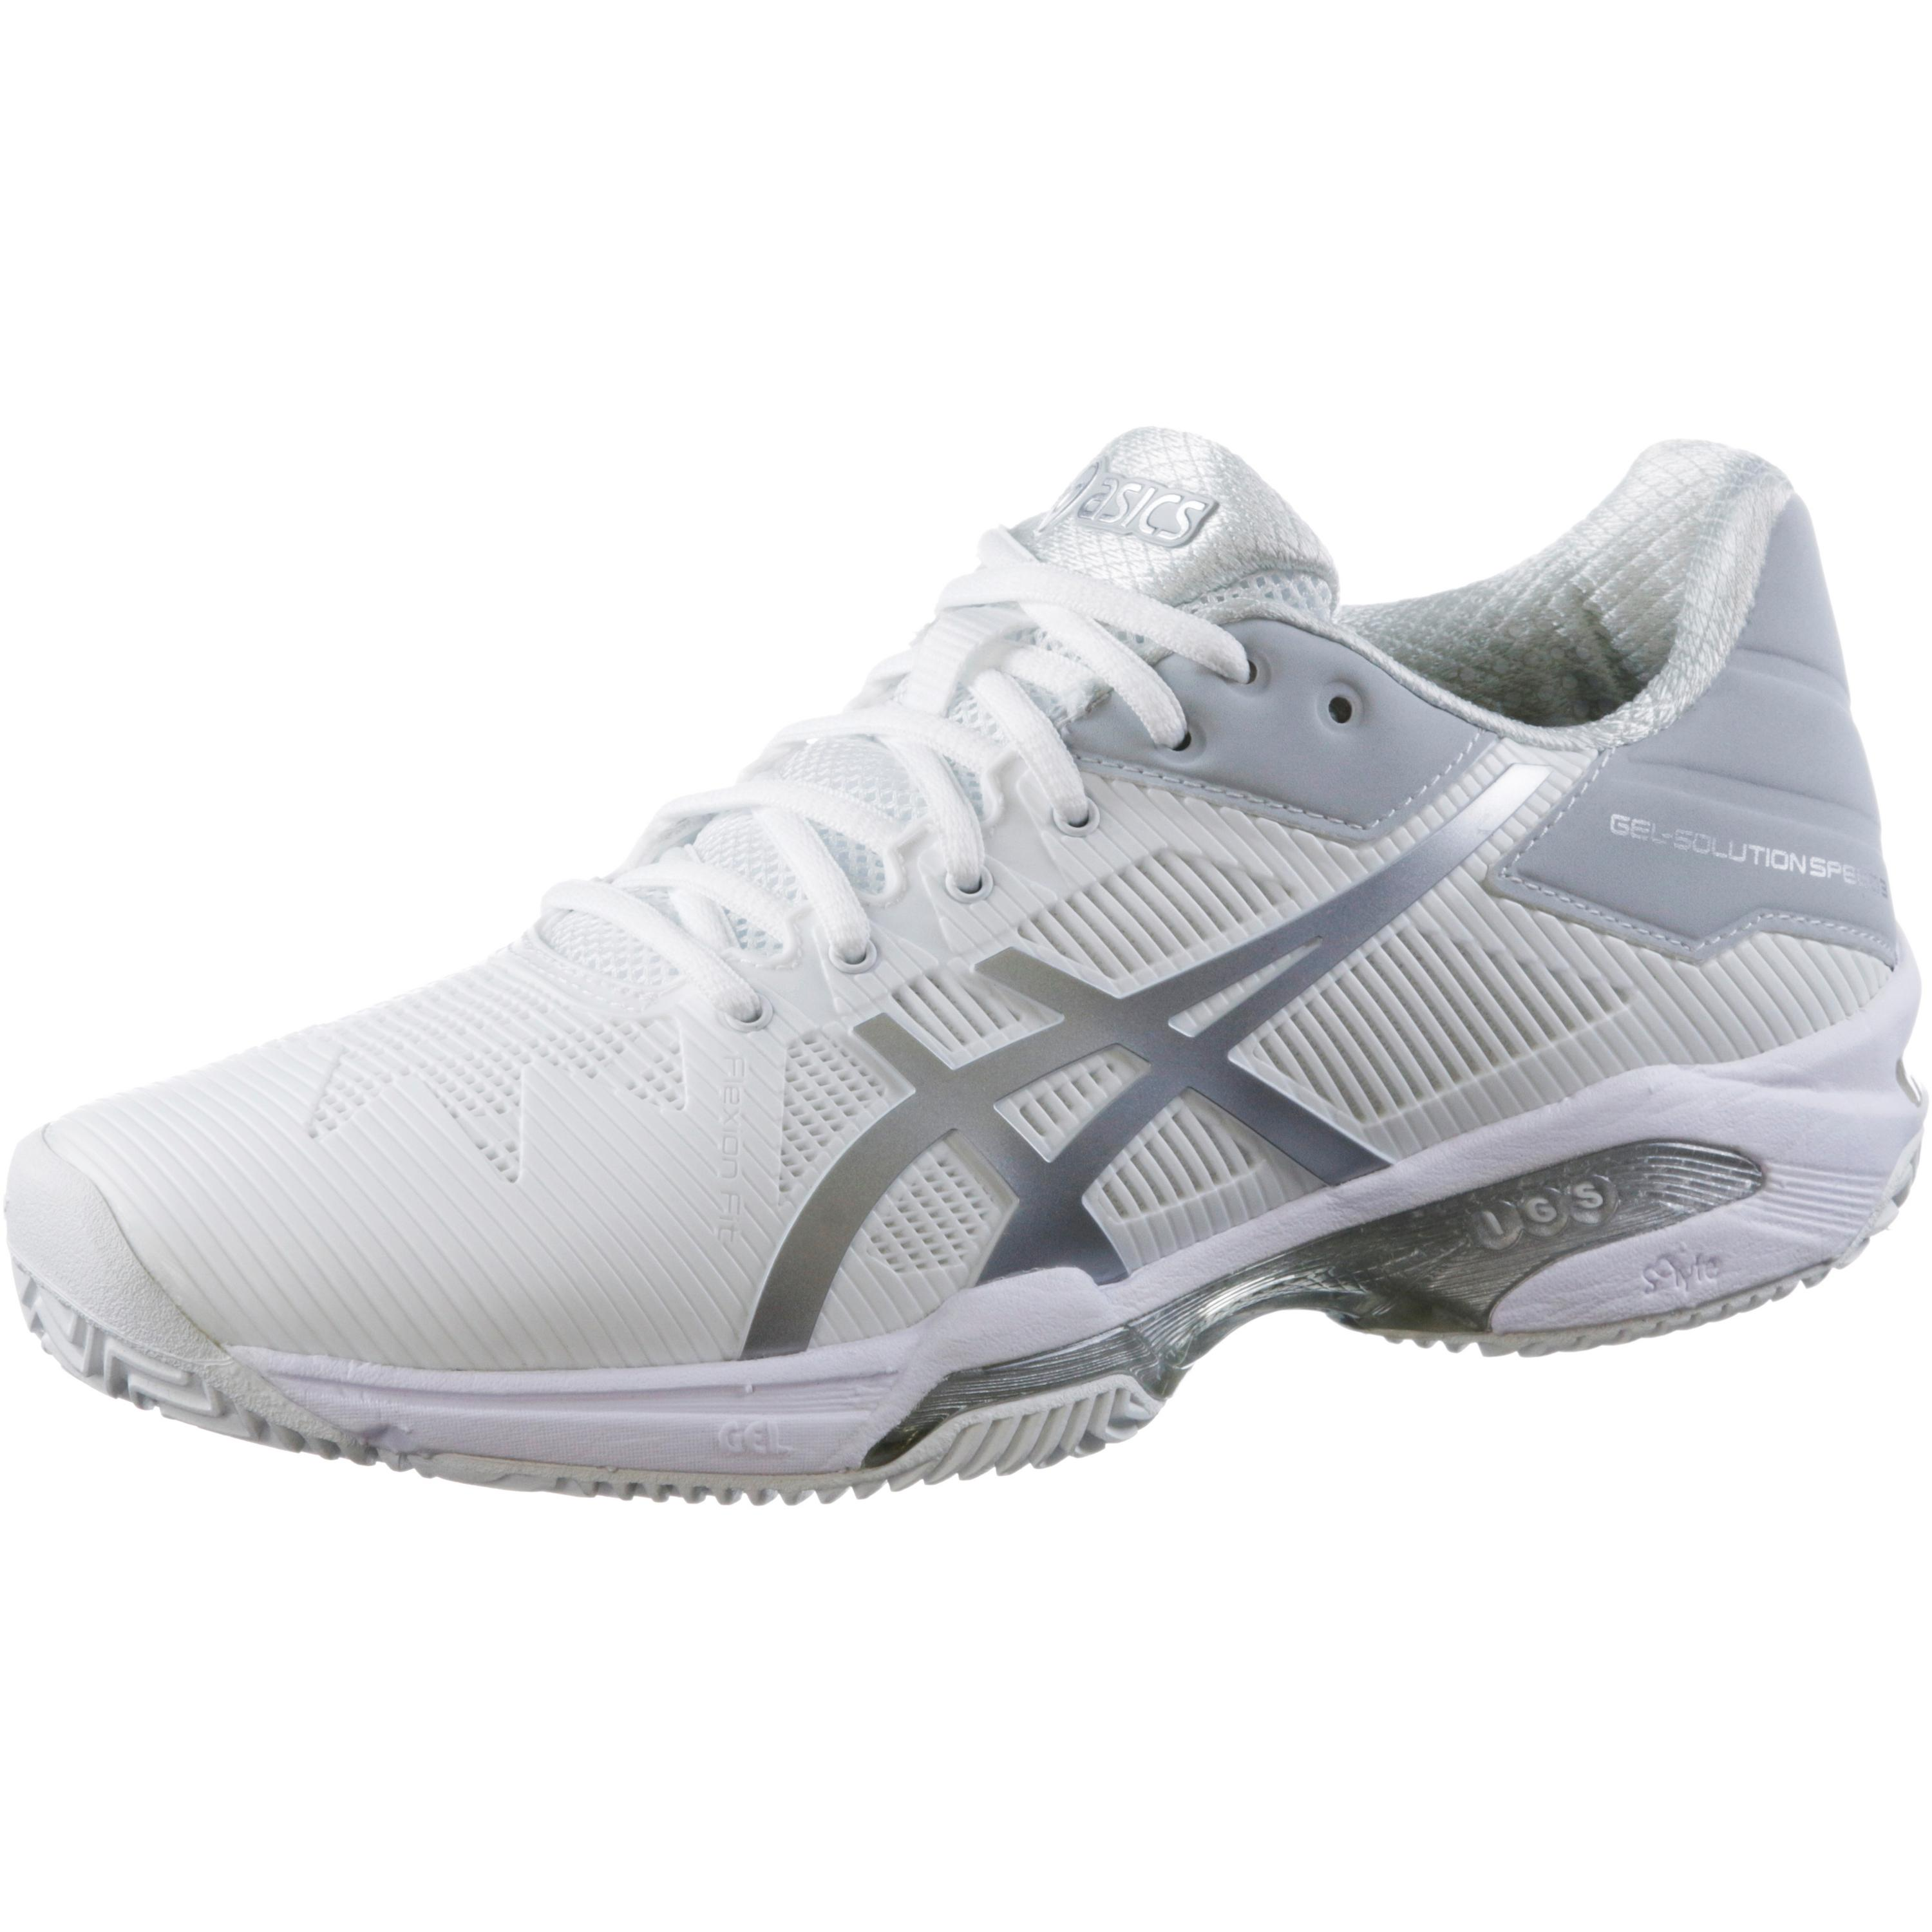 asics gel solution speed 3 clay tennisschuhe damen ausgezeichnete angebote im preisvergleich. Black Bedroom Furniture Sets. Home Design Ideas